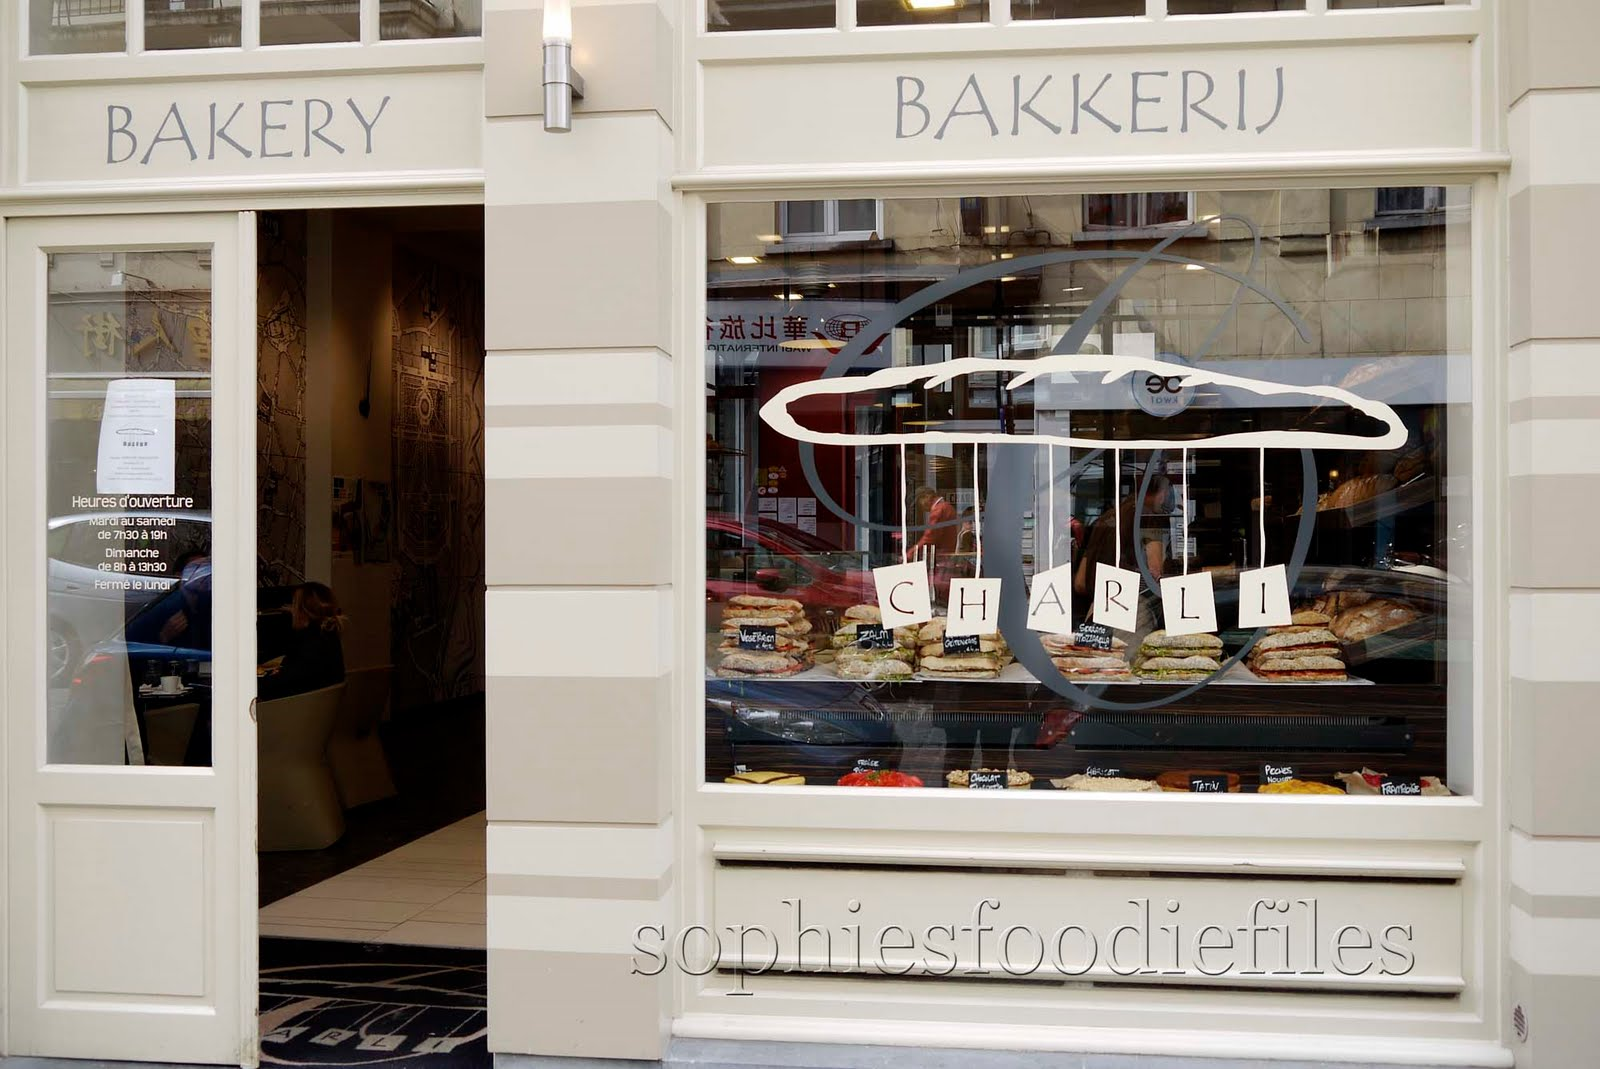 A few of my most lovely shops places and streets in and out brussels part 3 sophie 39 s foodie - Bakkerij lyon ...